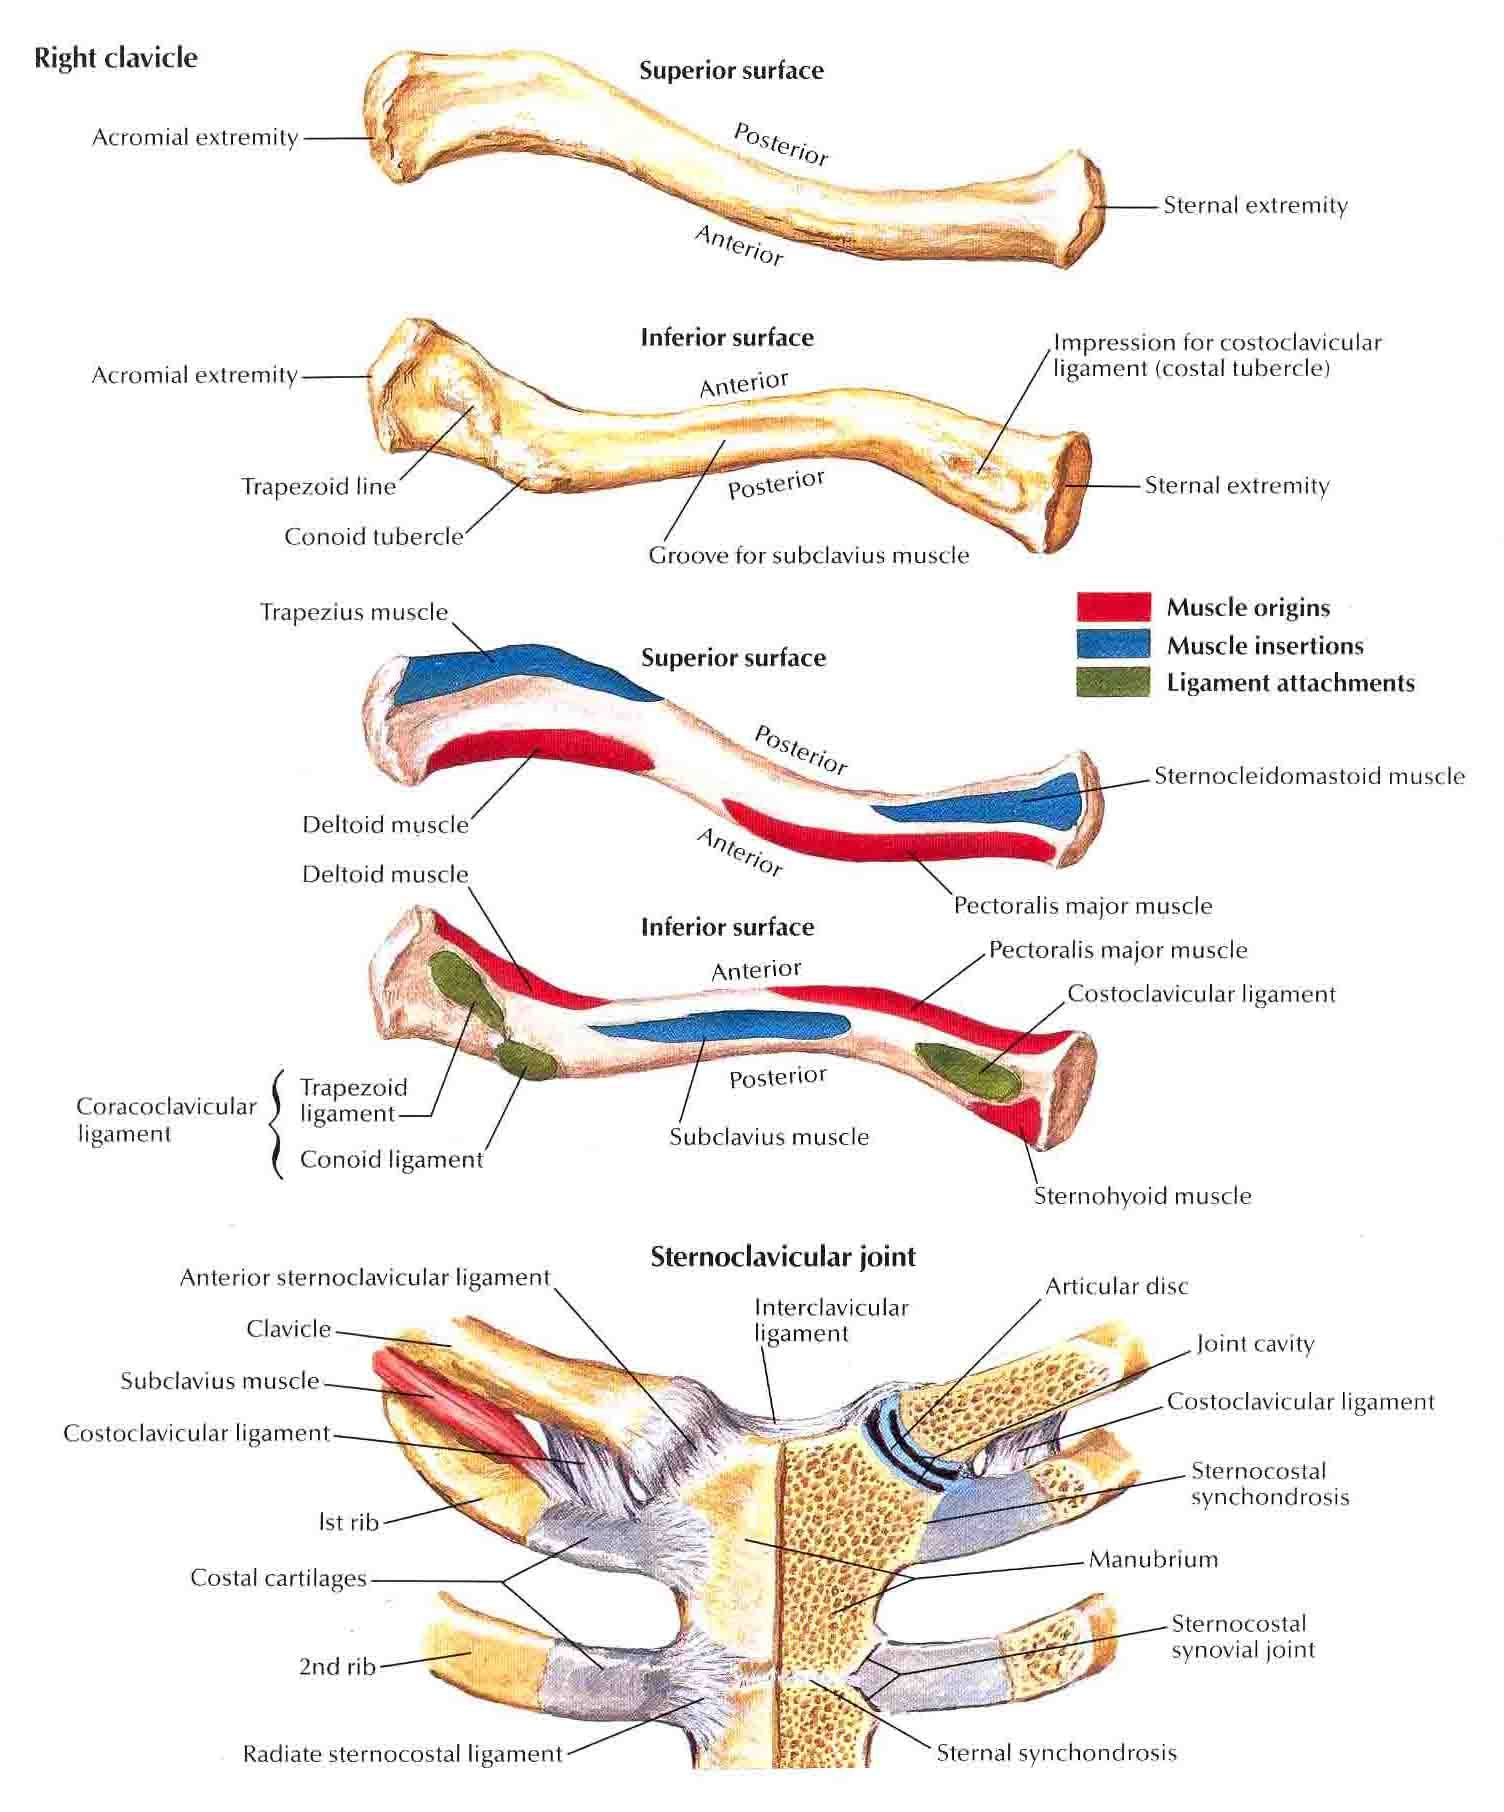 clavicle-and-sternoclavicular-joint.jpg 1,504×1,812 pixels | Yoga ...